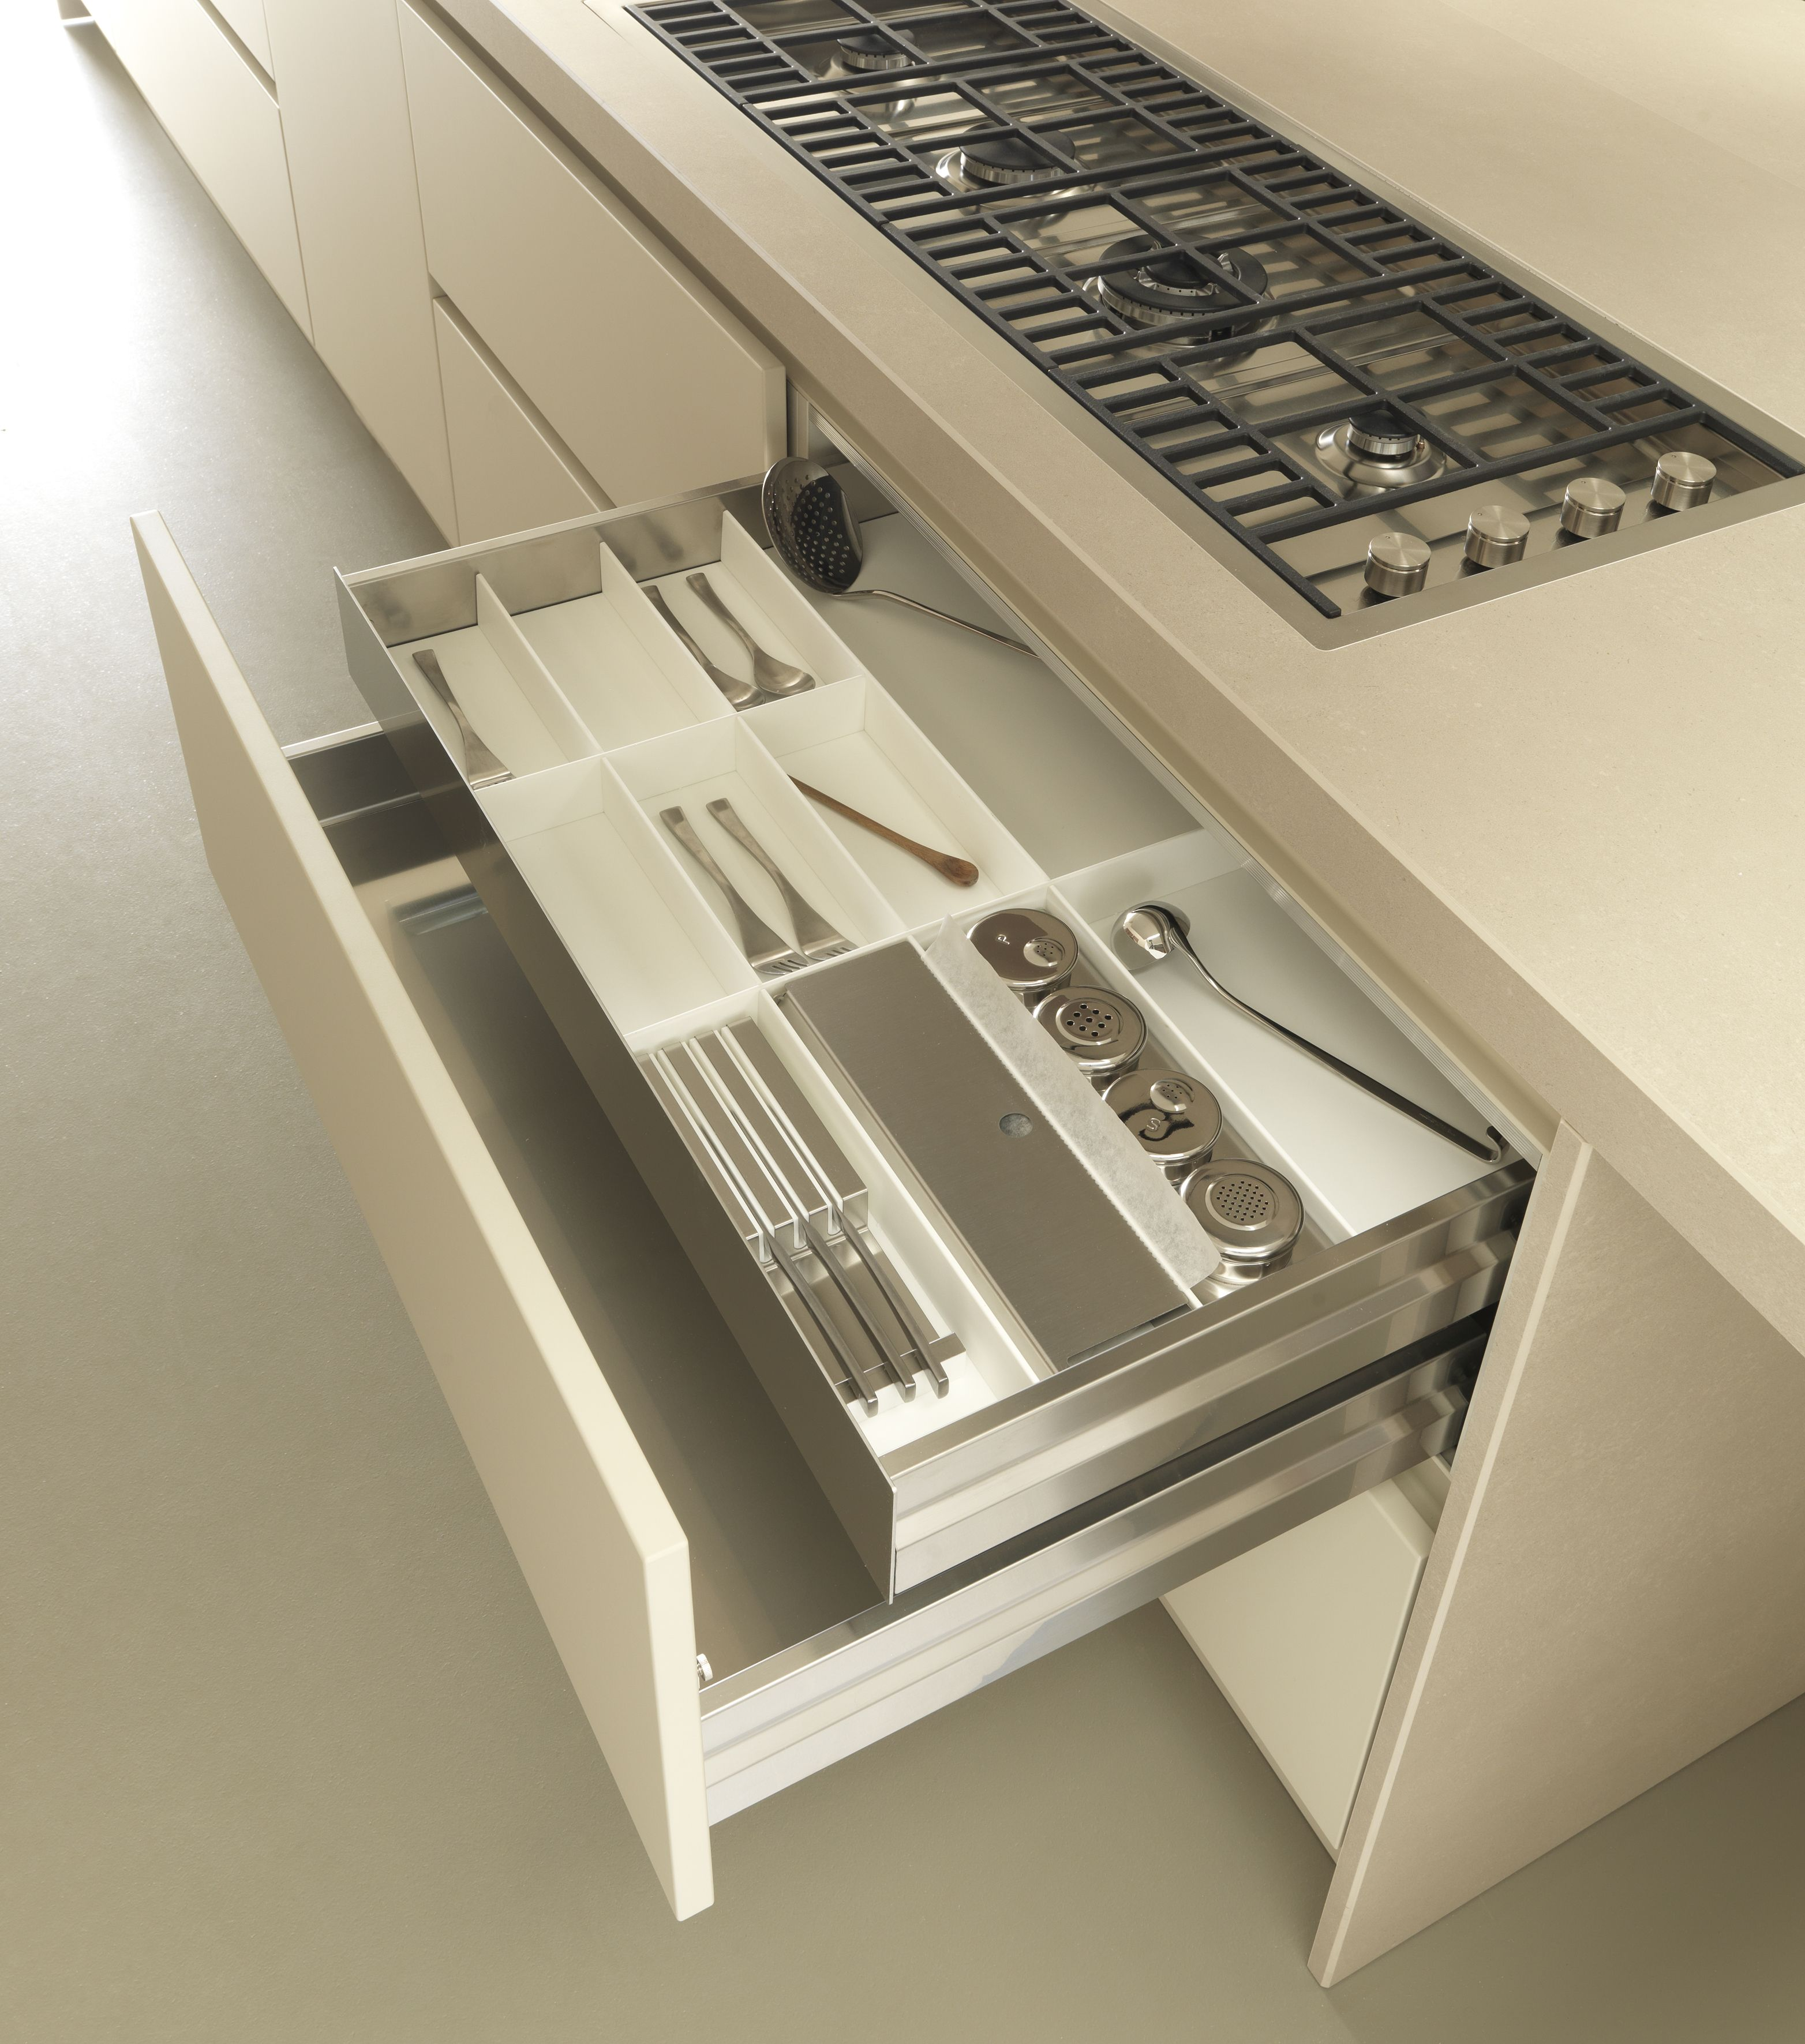 fineline' drawer inserts: stainless steel and white corian cutlery